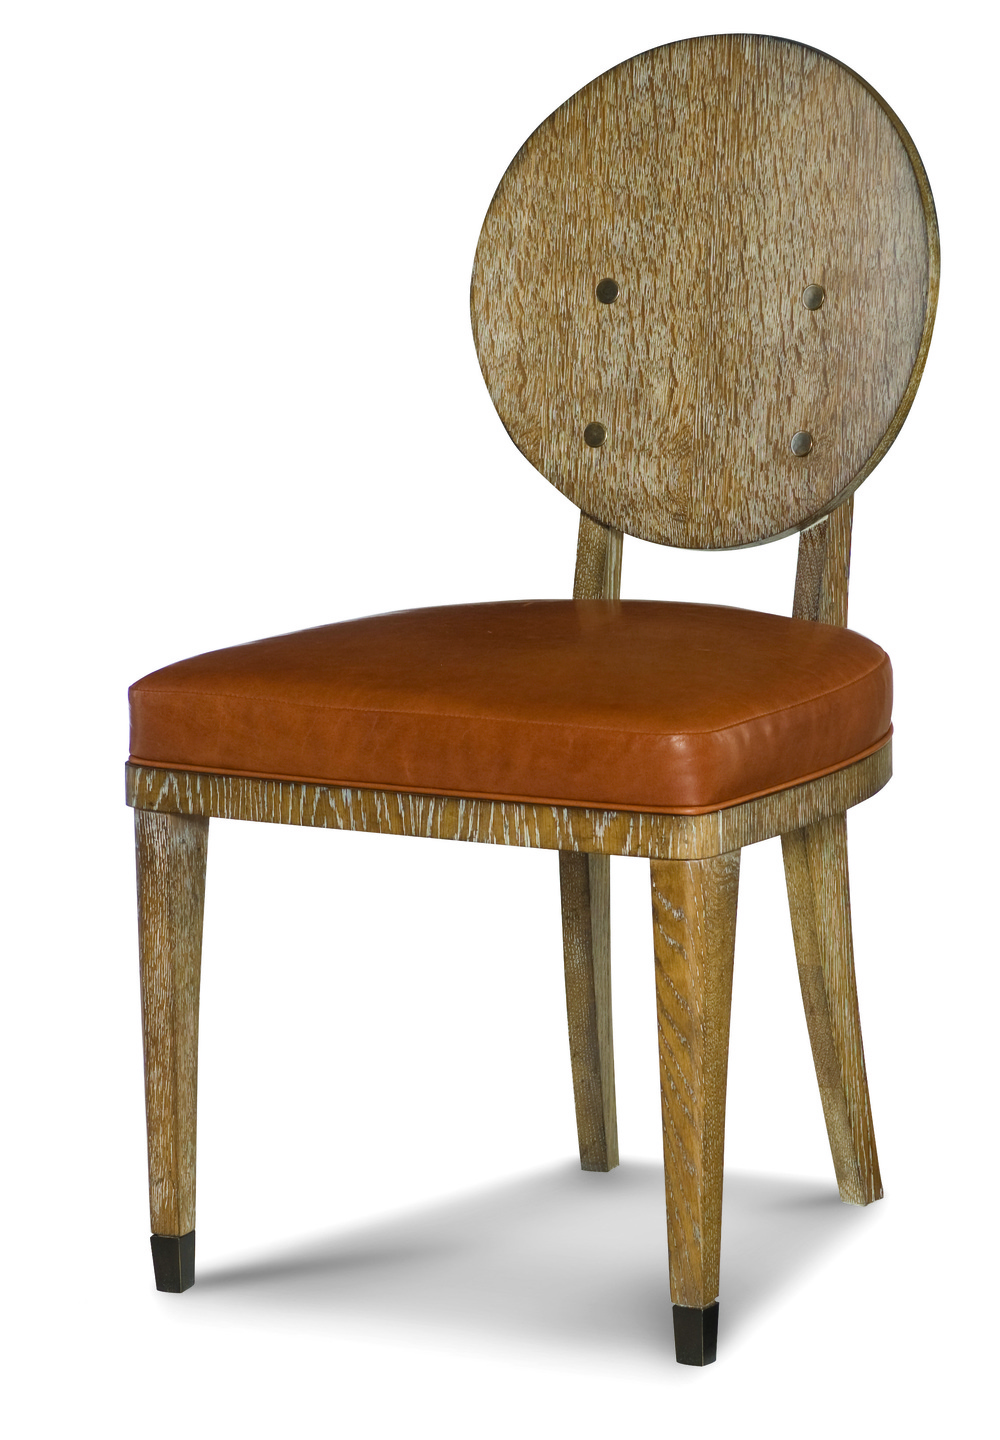 Century Furniture - Keira Chair w/ Wood Back